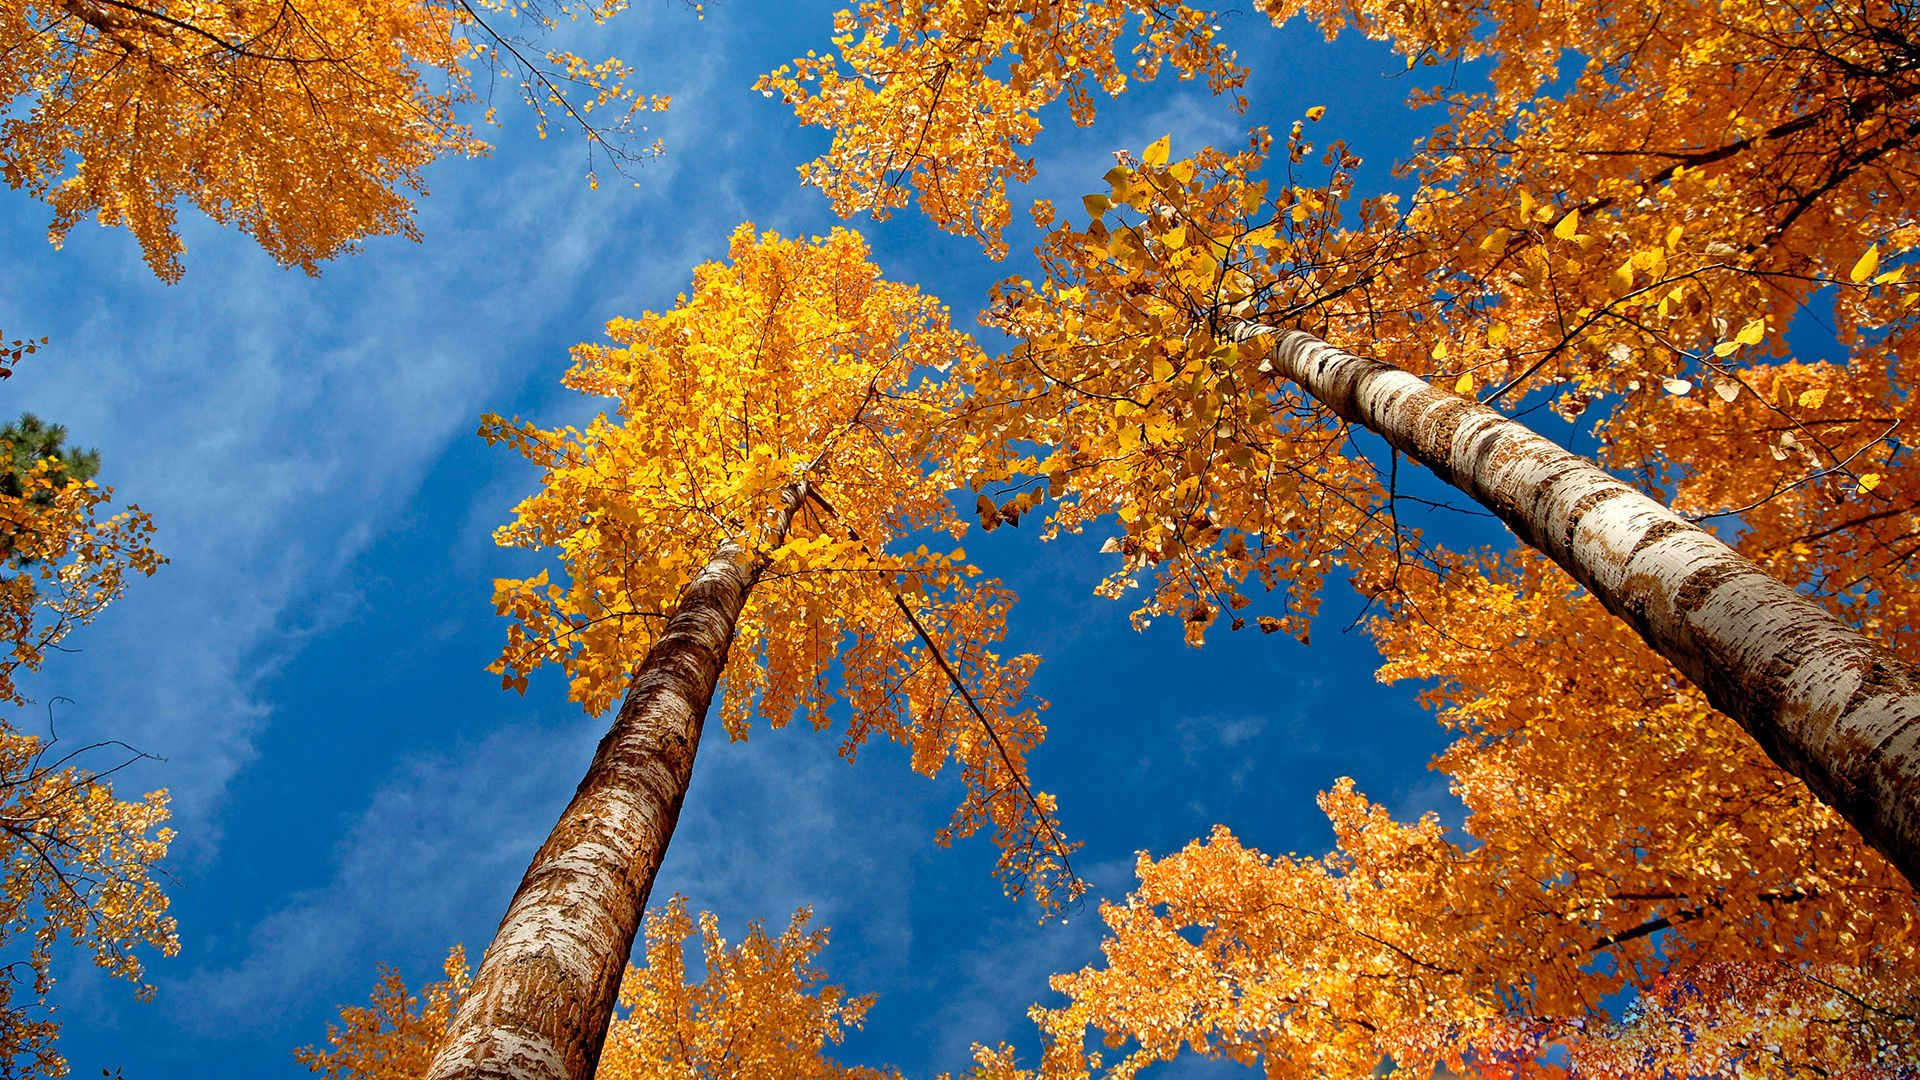 39 Autumn Wallpapers for Computers Tablets or Phones